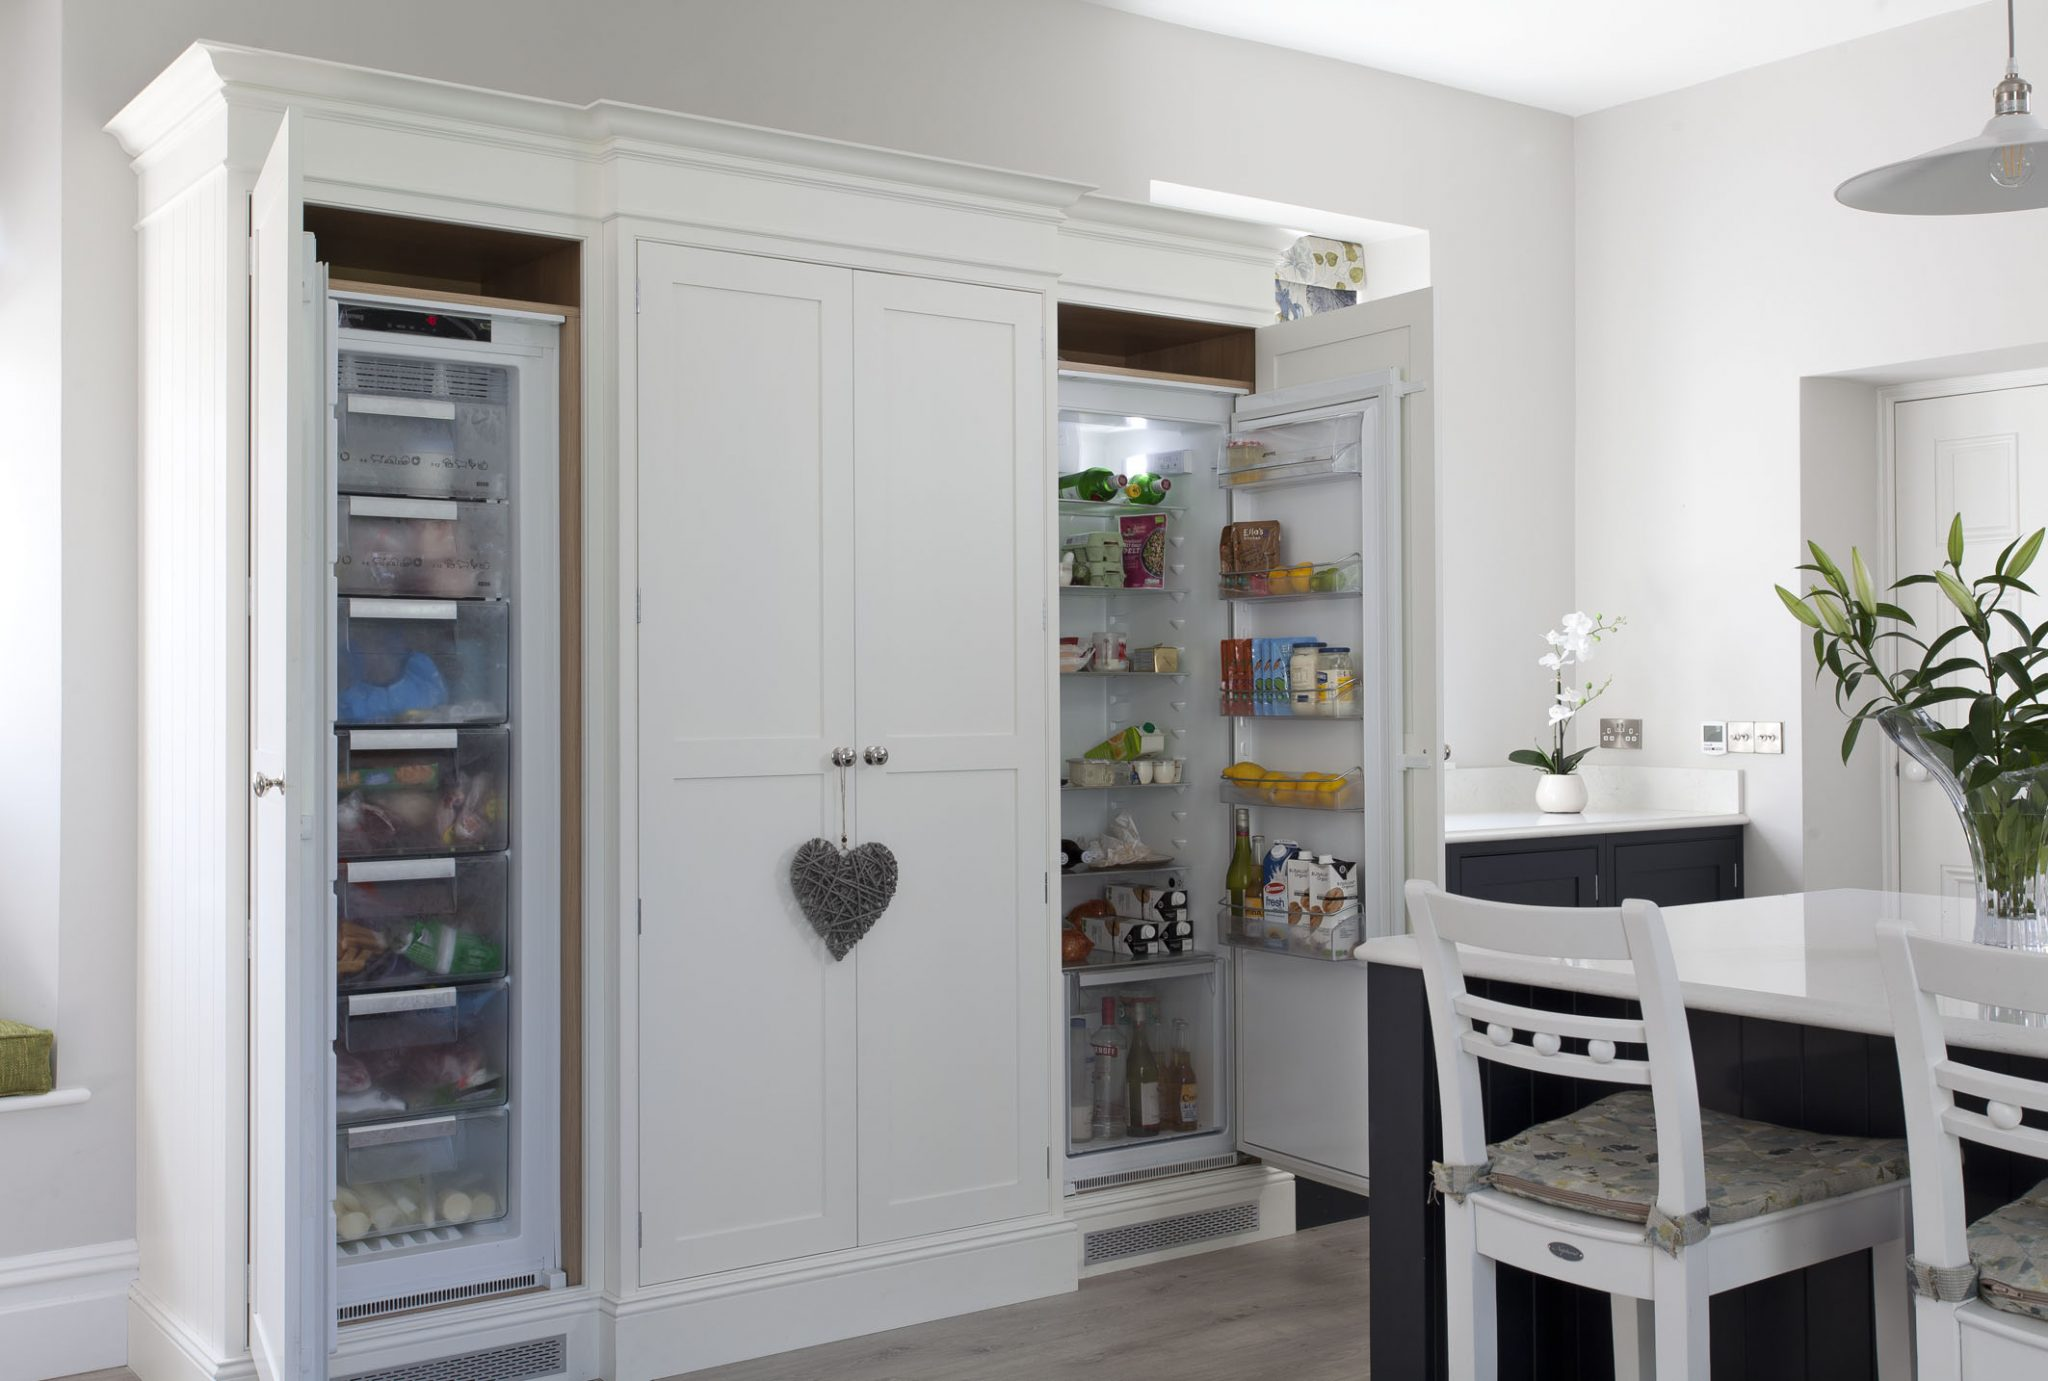 Deanery Modern Classic Shaker Style Kitchen Deanery Furniture